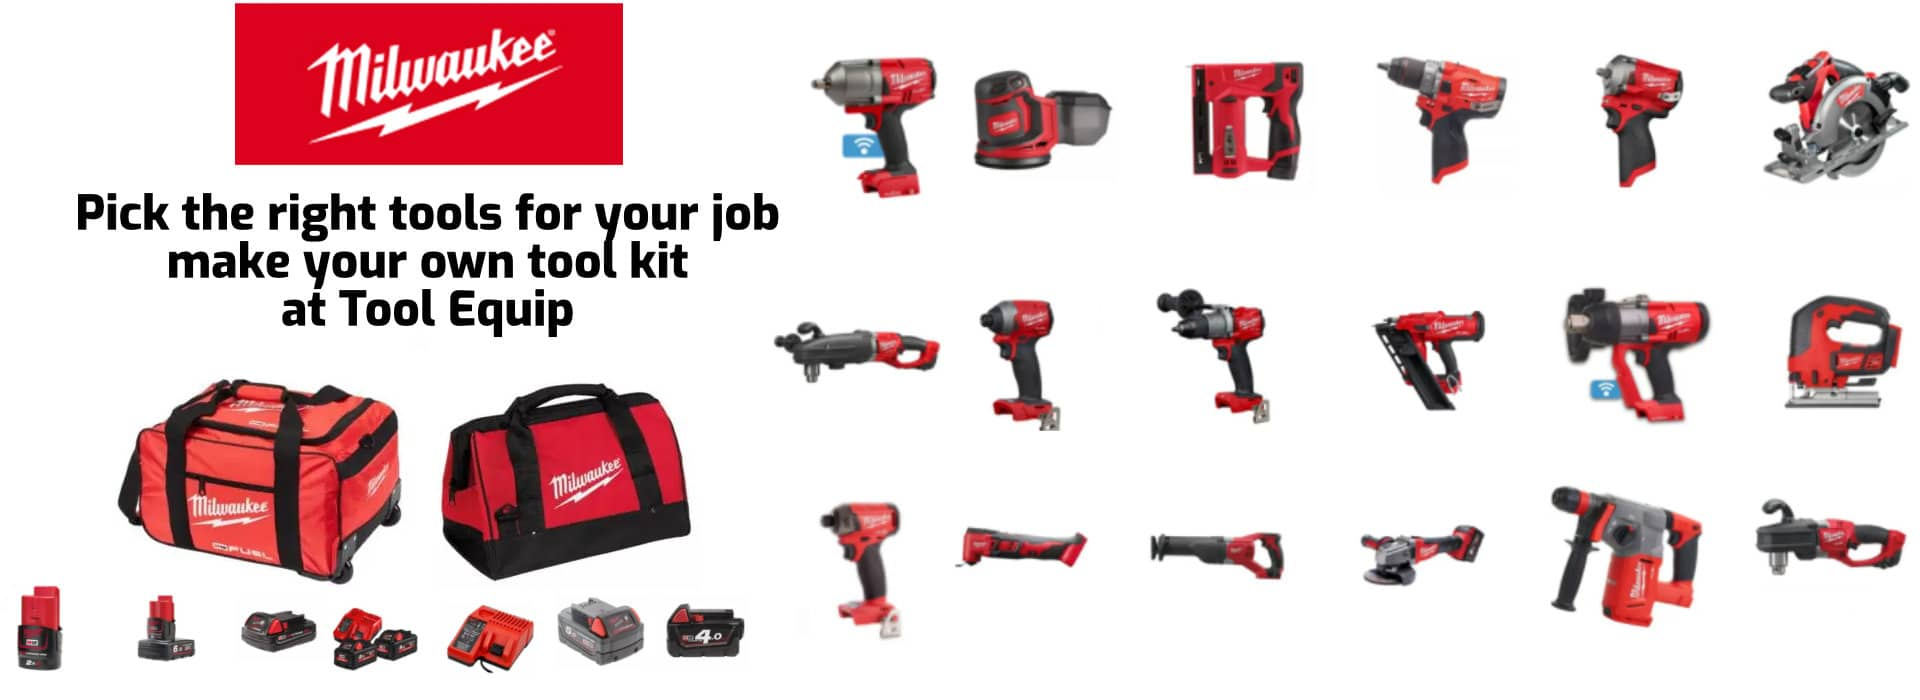 https://toolequip.ie/build-your-own-milwaukee-power-tool-kit/